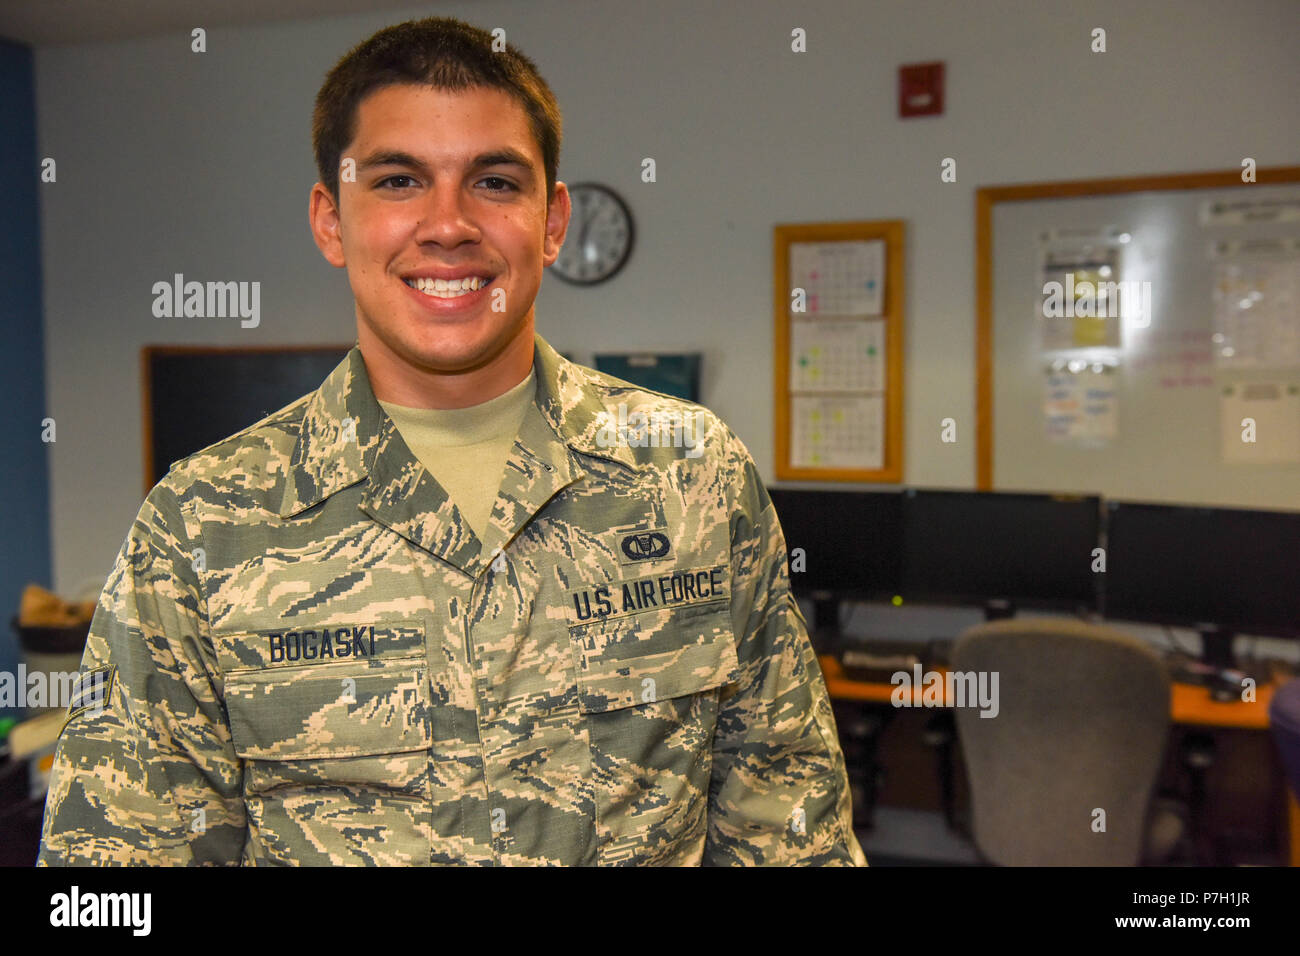 Aviation Resource Management Journeyman Airman 1st Class Corey Bogaski is a drill status Guardsman assigned to the 171st Air Refueling Wing Operations Support Squadron. A Beechview native, he has two and a half years of service in the Air National Guard. He is a sophomore at Community College of Allegheny County majoring in Engineering Science. Airman 1st Class Bogaski spends his free time as a boxer and a wrestler. (U.S. Air National Guard photo by Staff Sgt. Bryan Hoover) Stock Photo